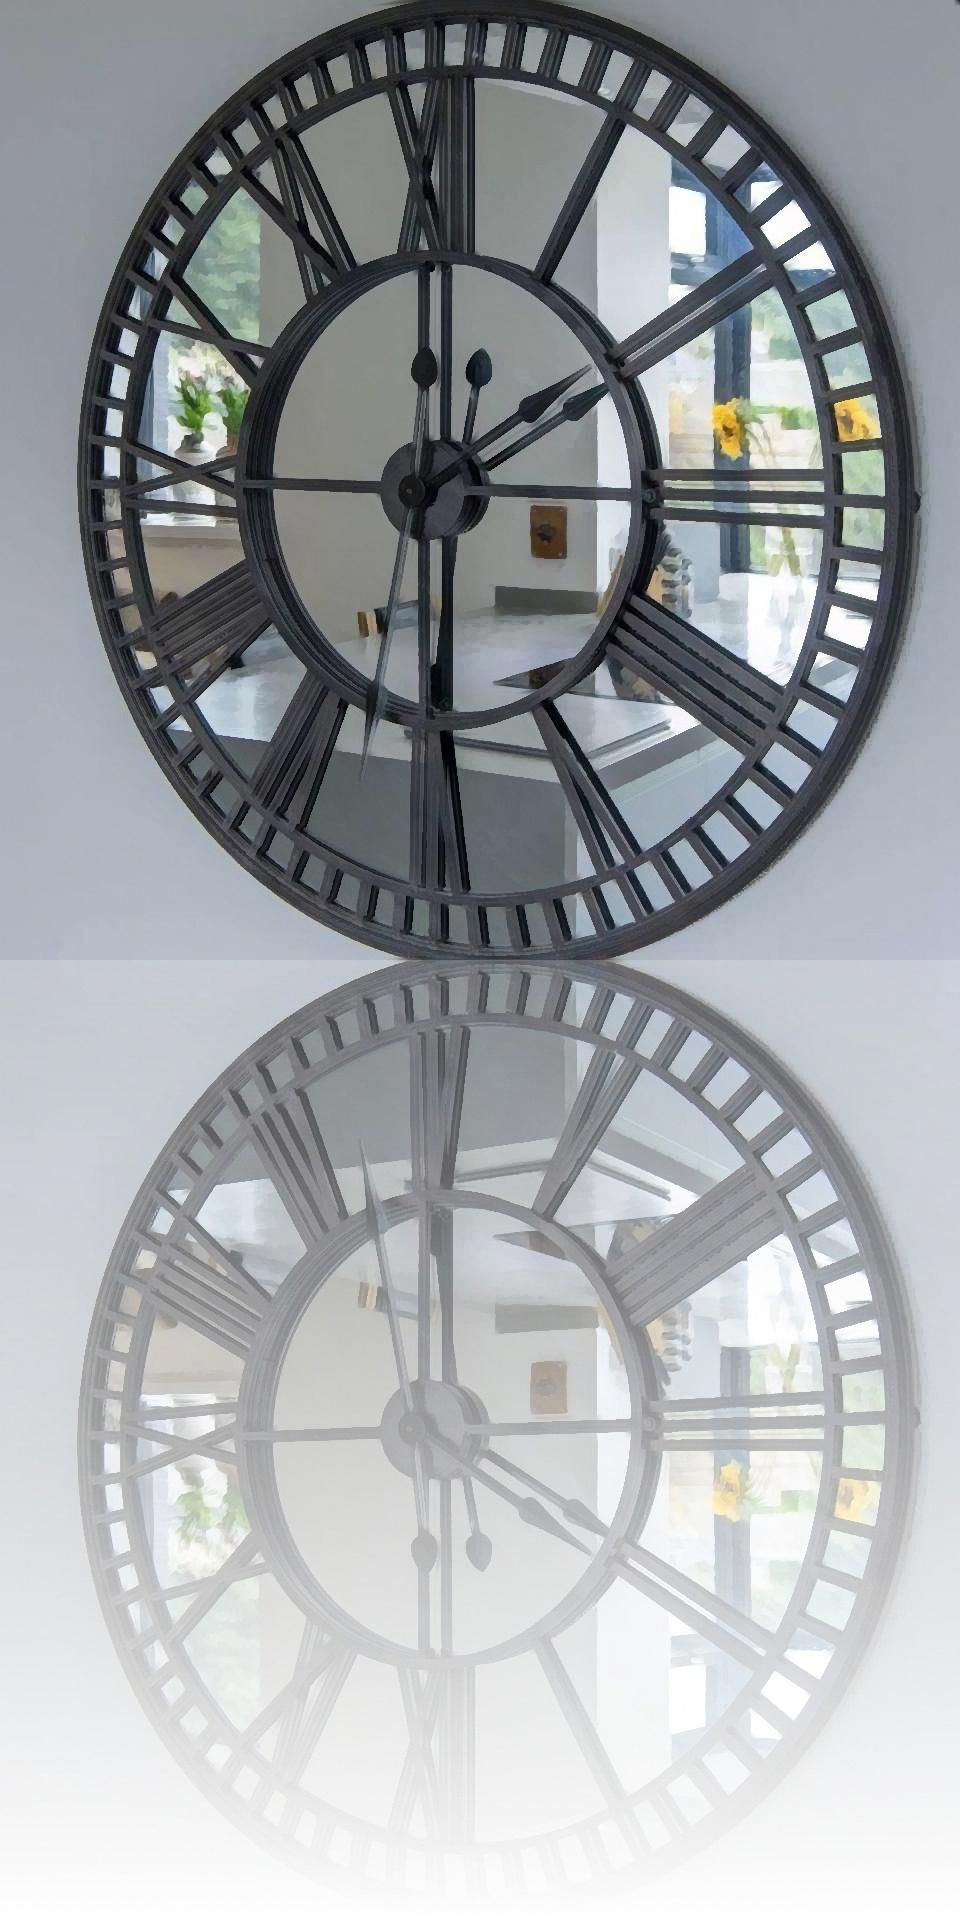 Large Kitchen Clocks Oversized Wall Clock Oversized Wall Clock Black Wall Clock Wall Clock Modern